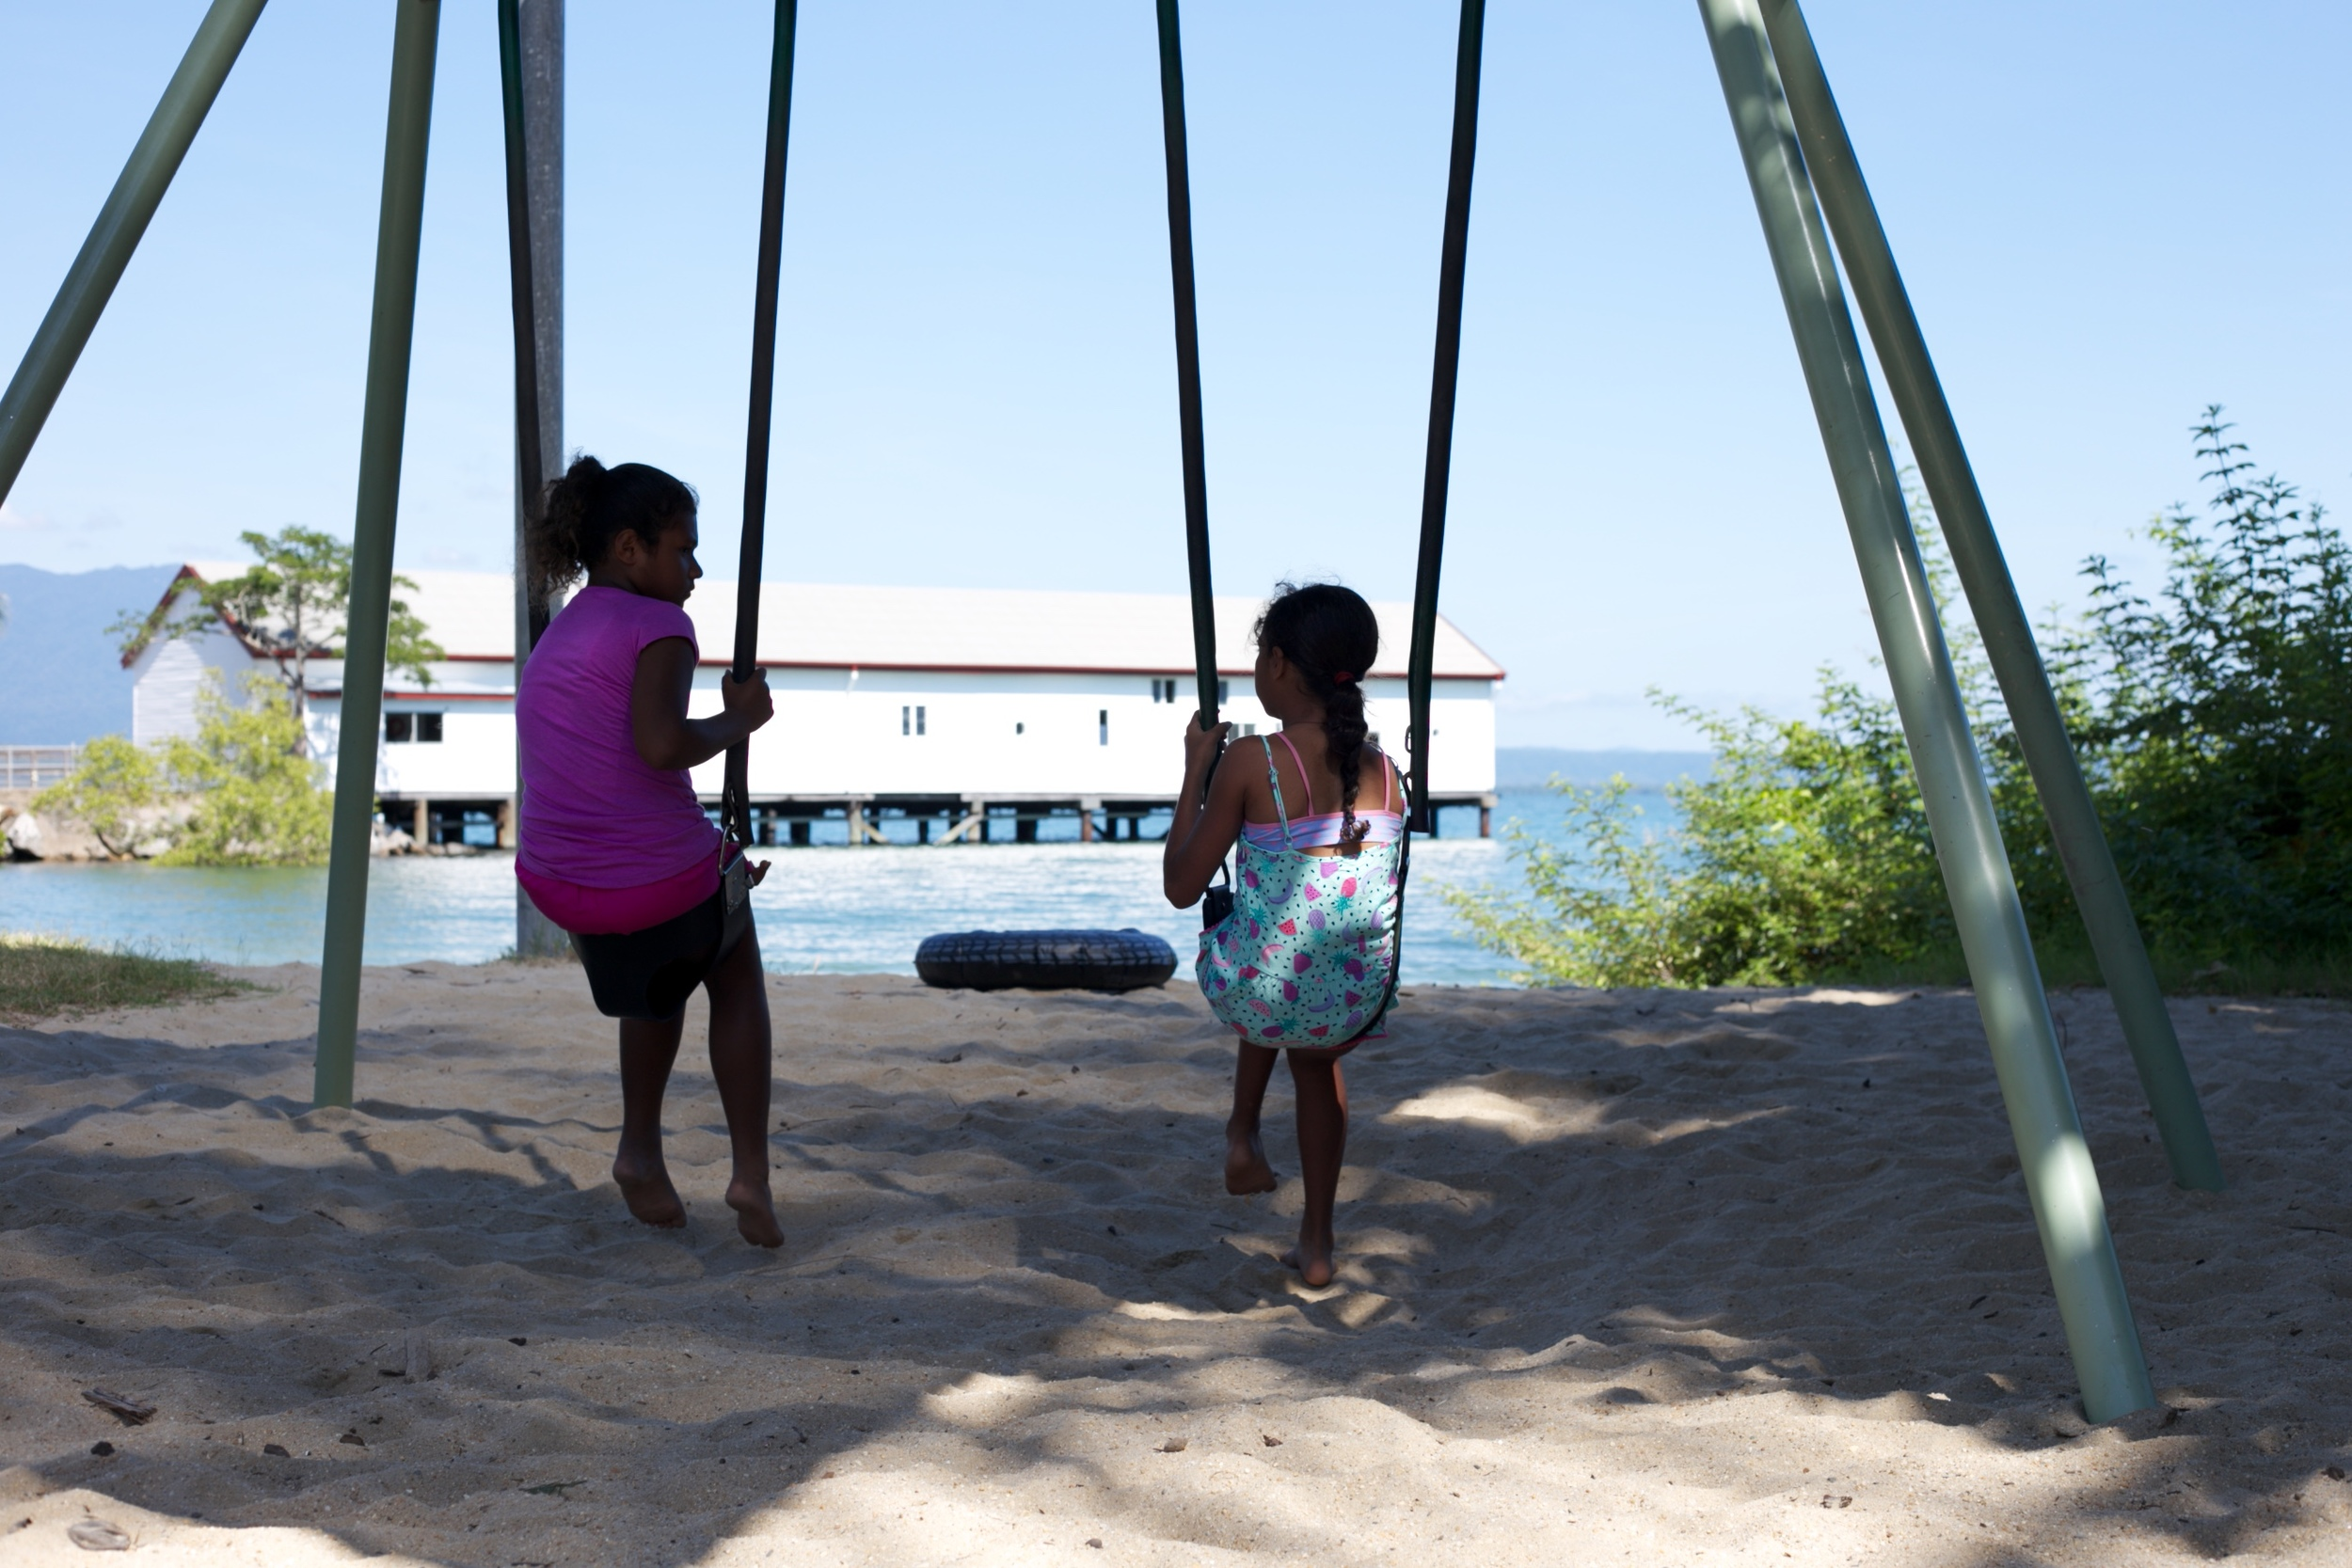 Two young aboriginal girls playing on the swings.